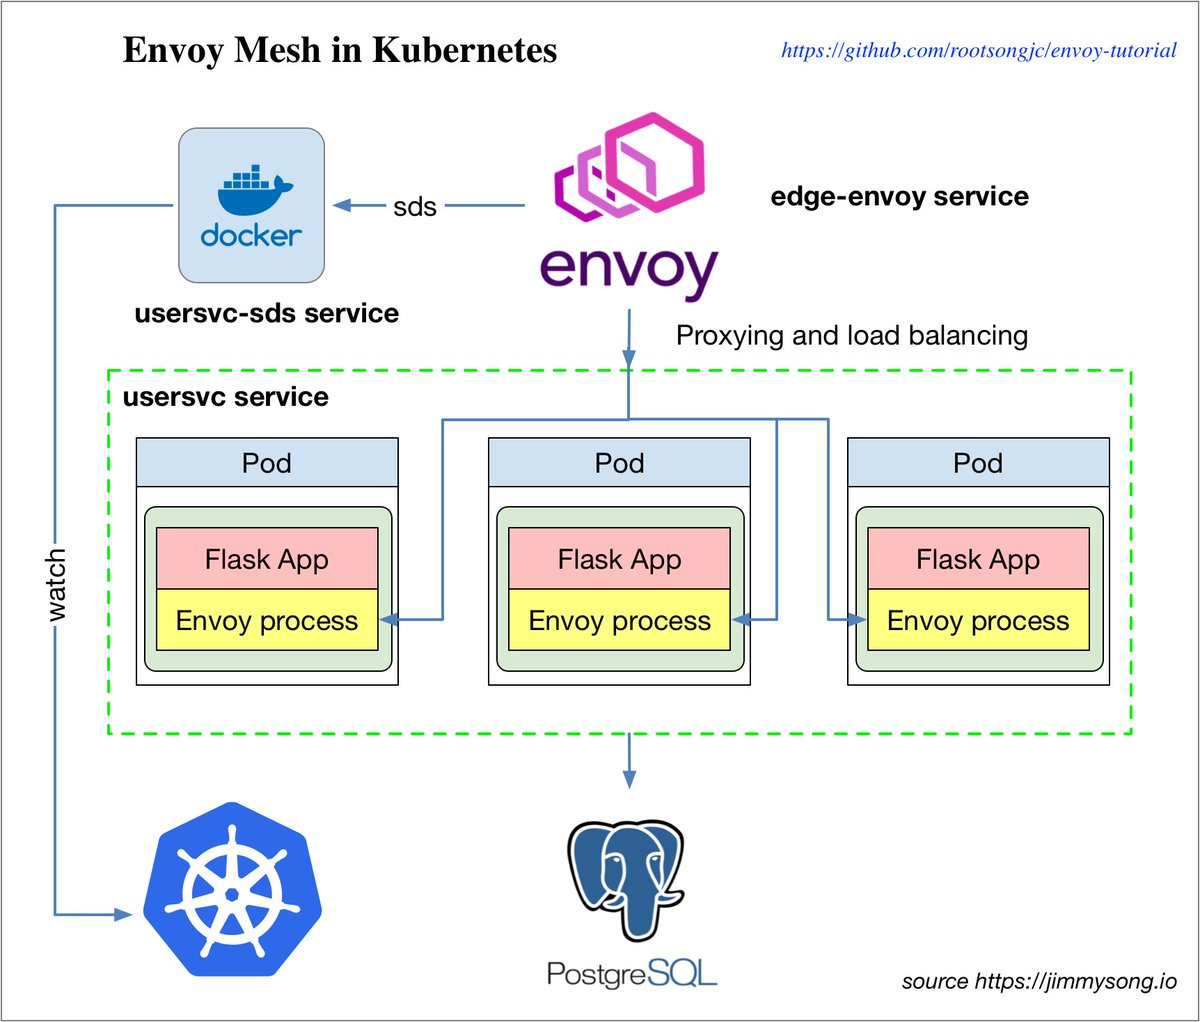 hight resolution of  the example from https github com datawire envoy steps see more https jimmysong io posts envoy mesh in kubernetes tutorial pic twitter com